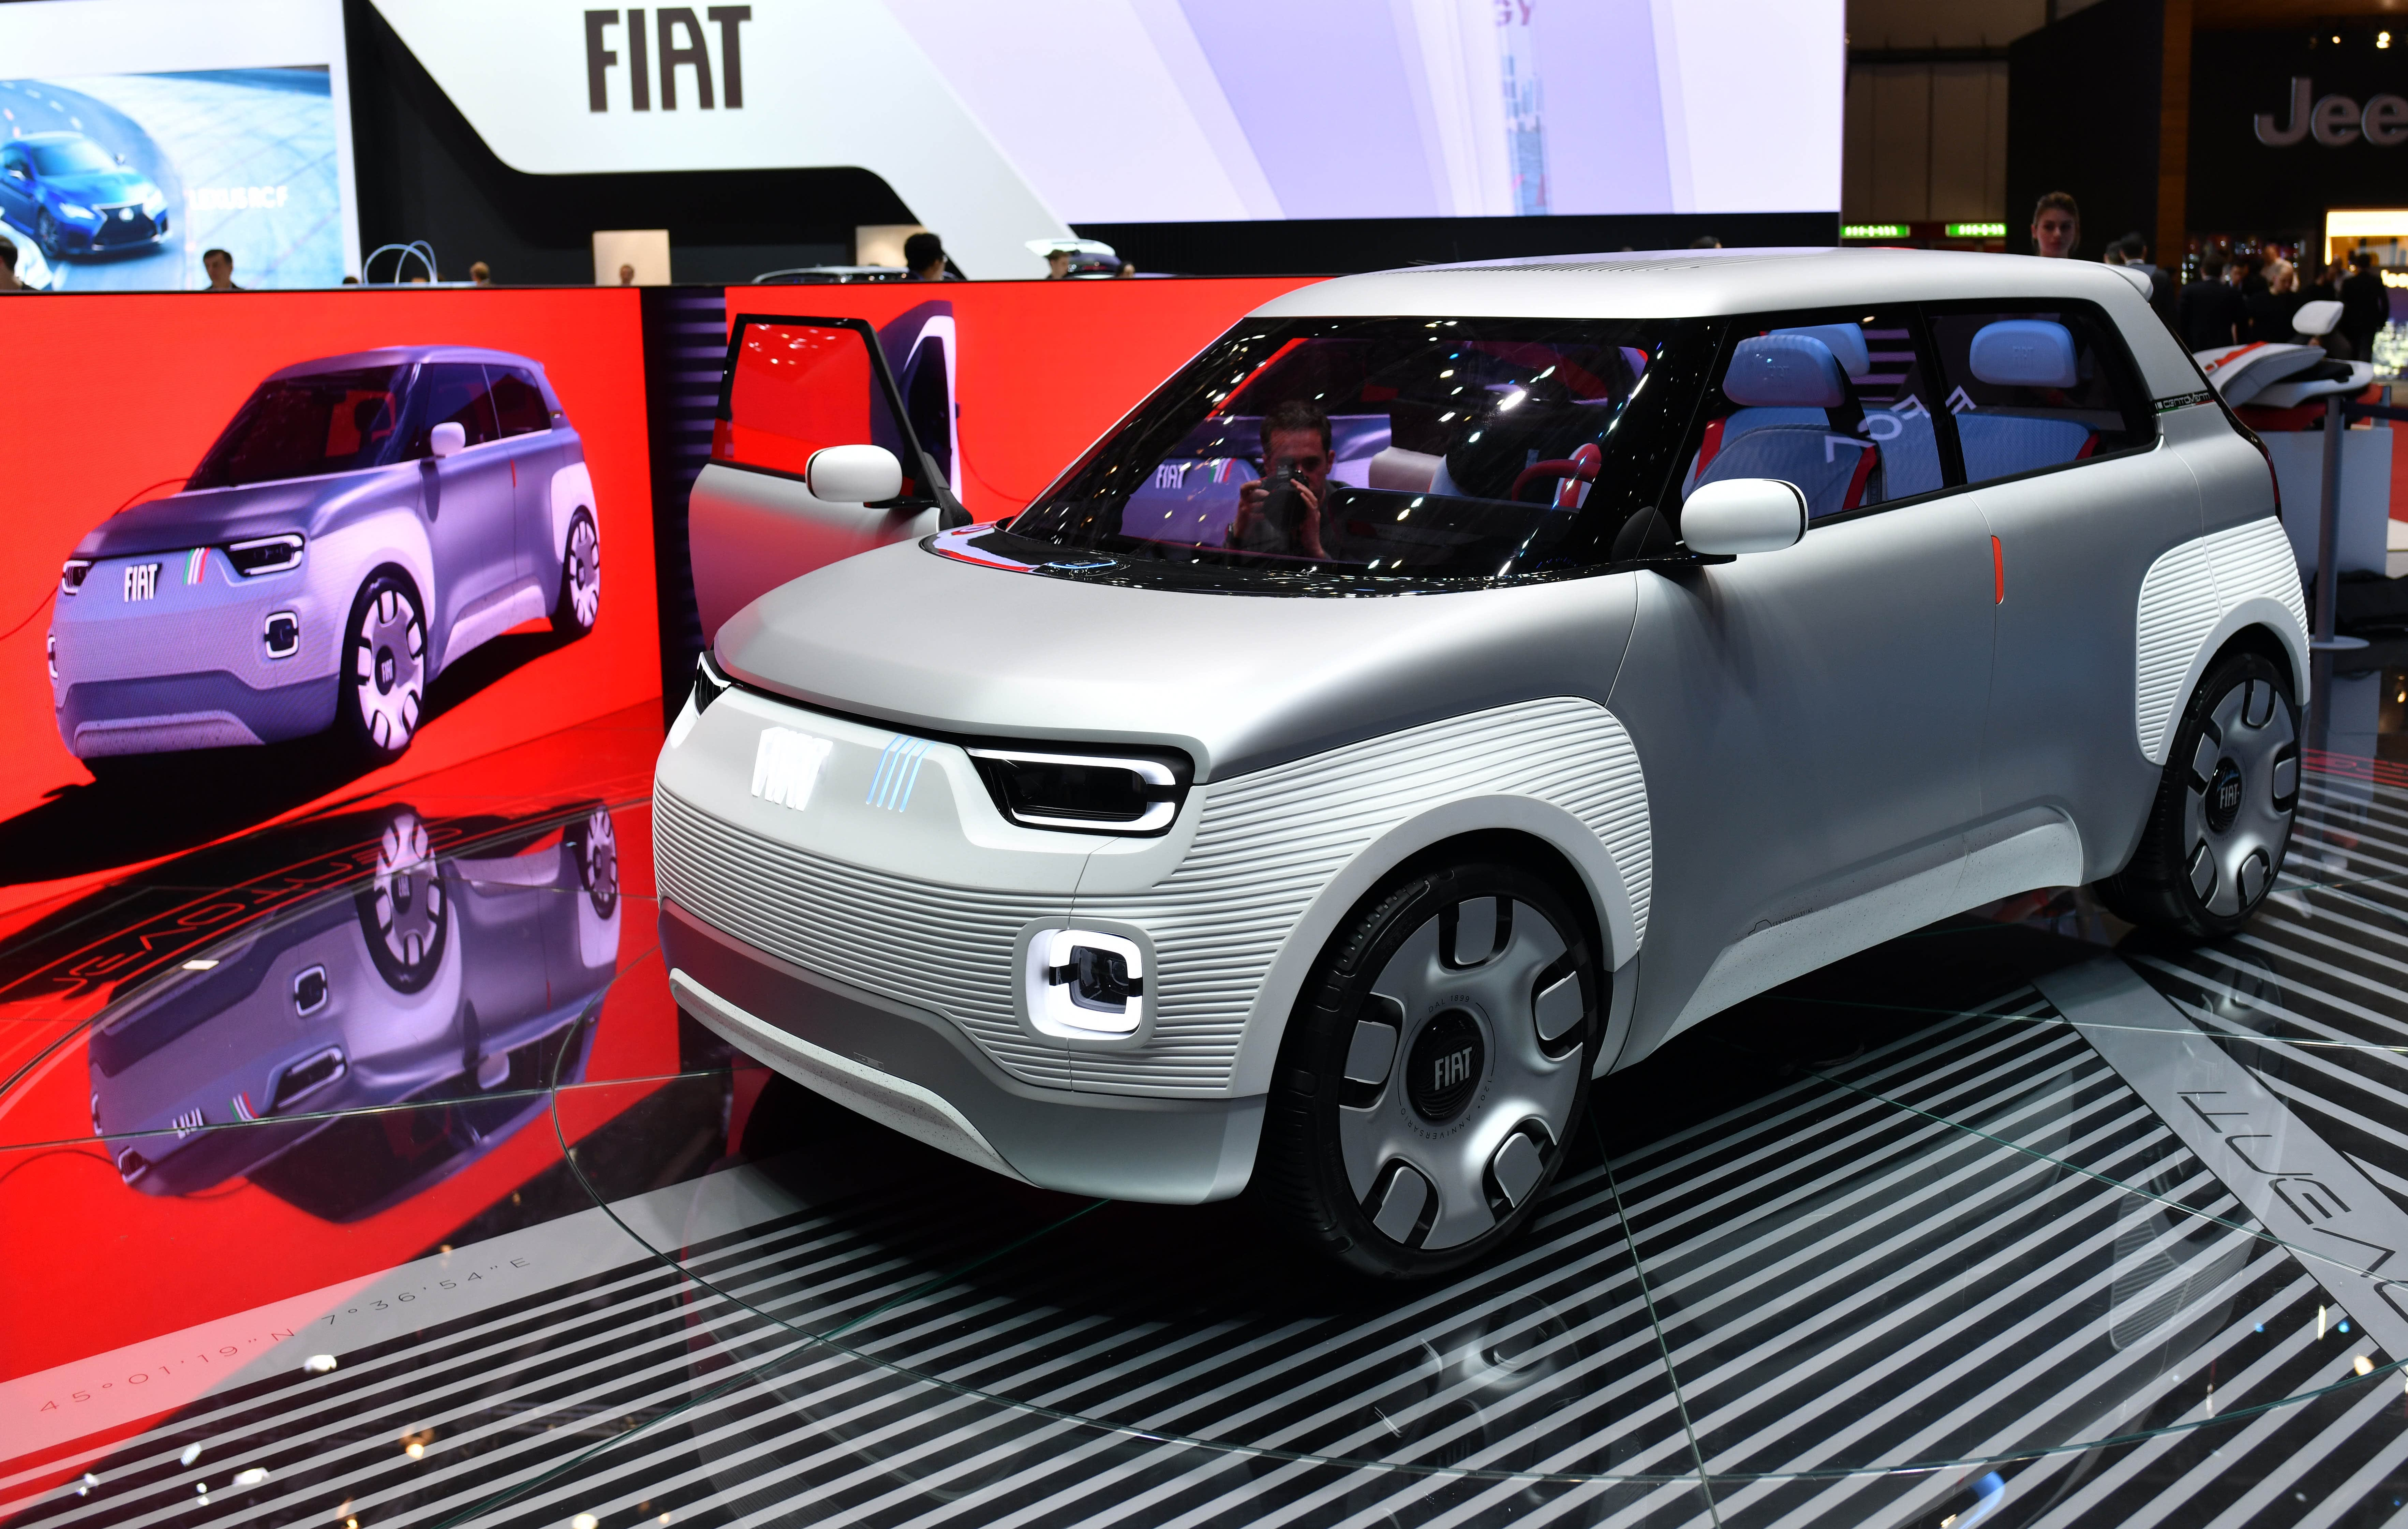 The Italian automaker Fiat unveils 'Centoventi' electric concept car during the second press day of the 89th Geneva International Motor Show in Geneva, Switzerland on March 06, 2019. (Photo by Mustafa Yalcin/Anadolu Agency/Getty Images)